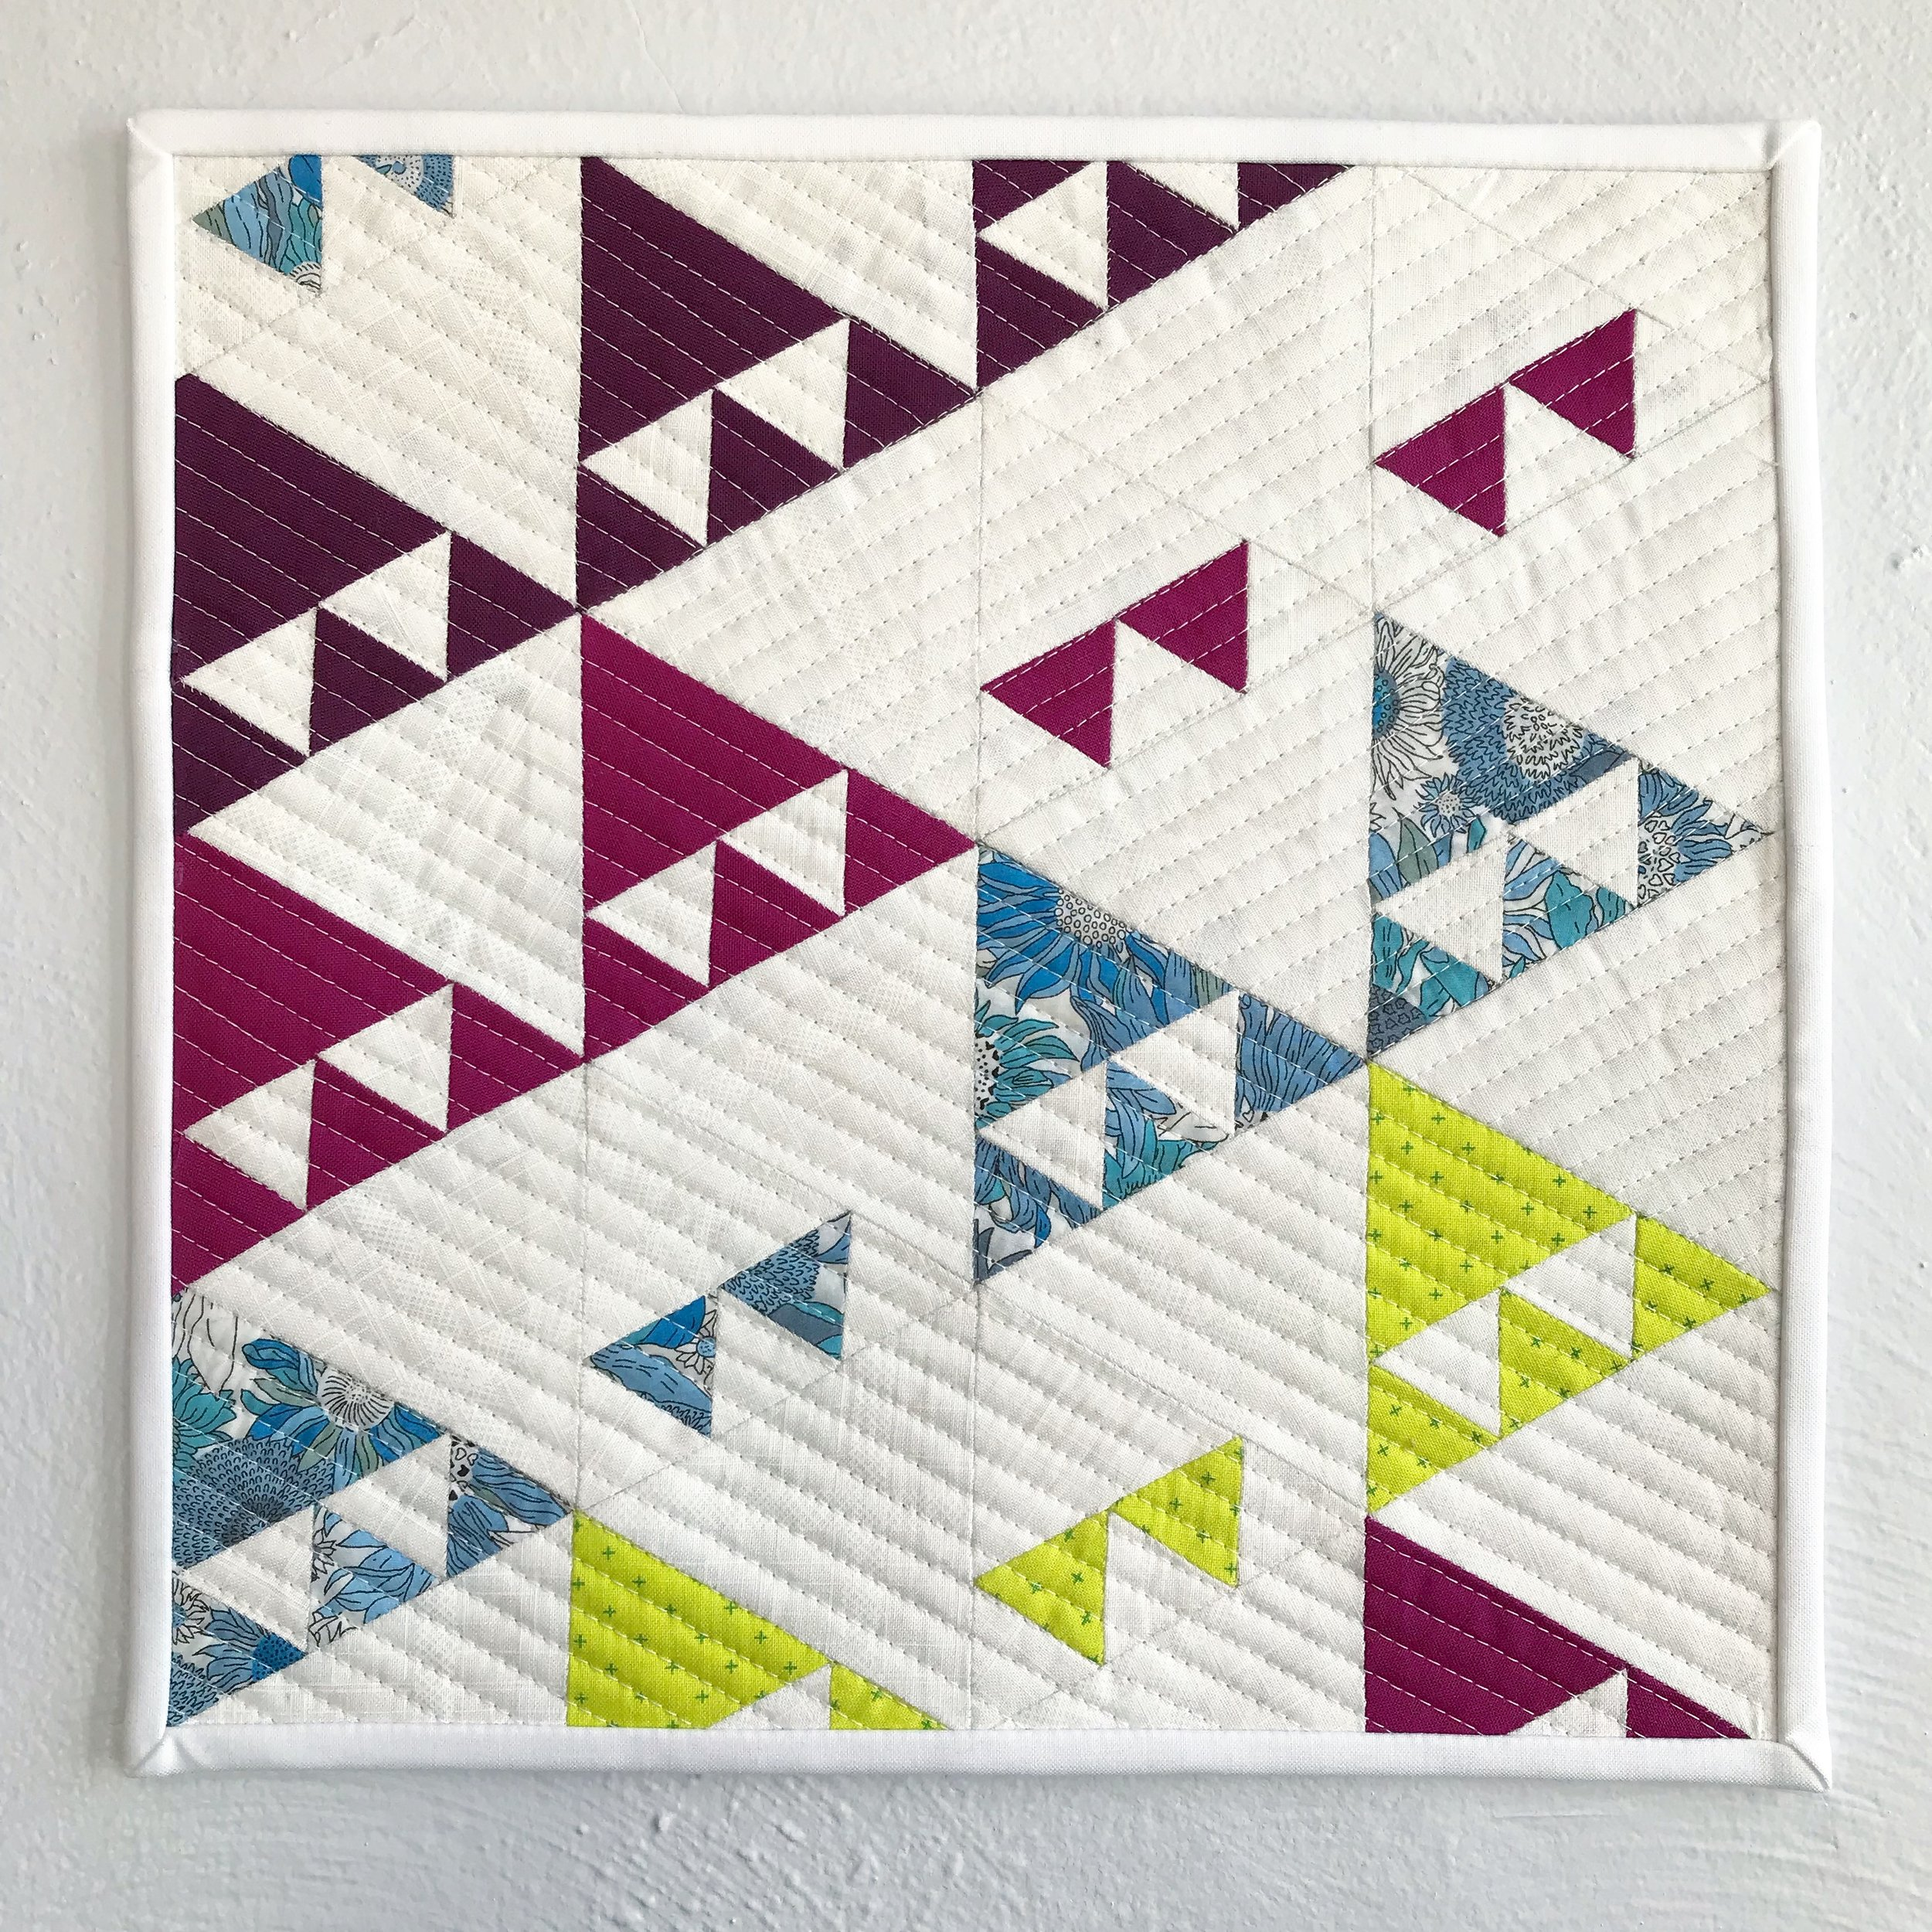 """Climb That Mountain   Hand-stitched, machine quilted. 13"""" square.  Made for  Curated Quilts  mini-challenge, Issue 4.  2018"""